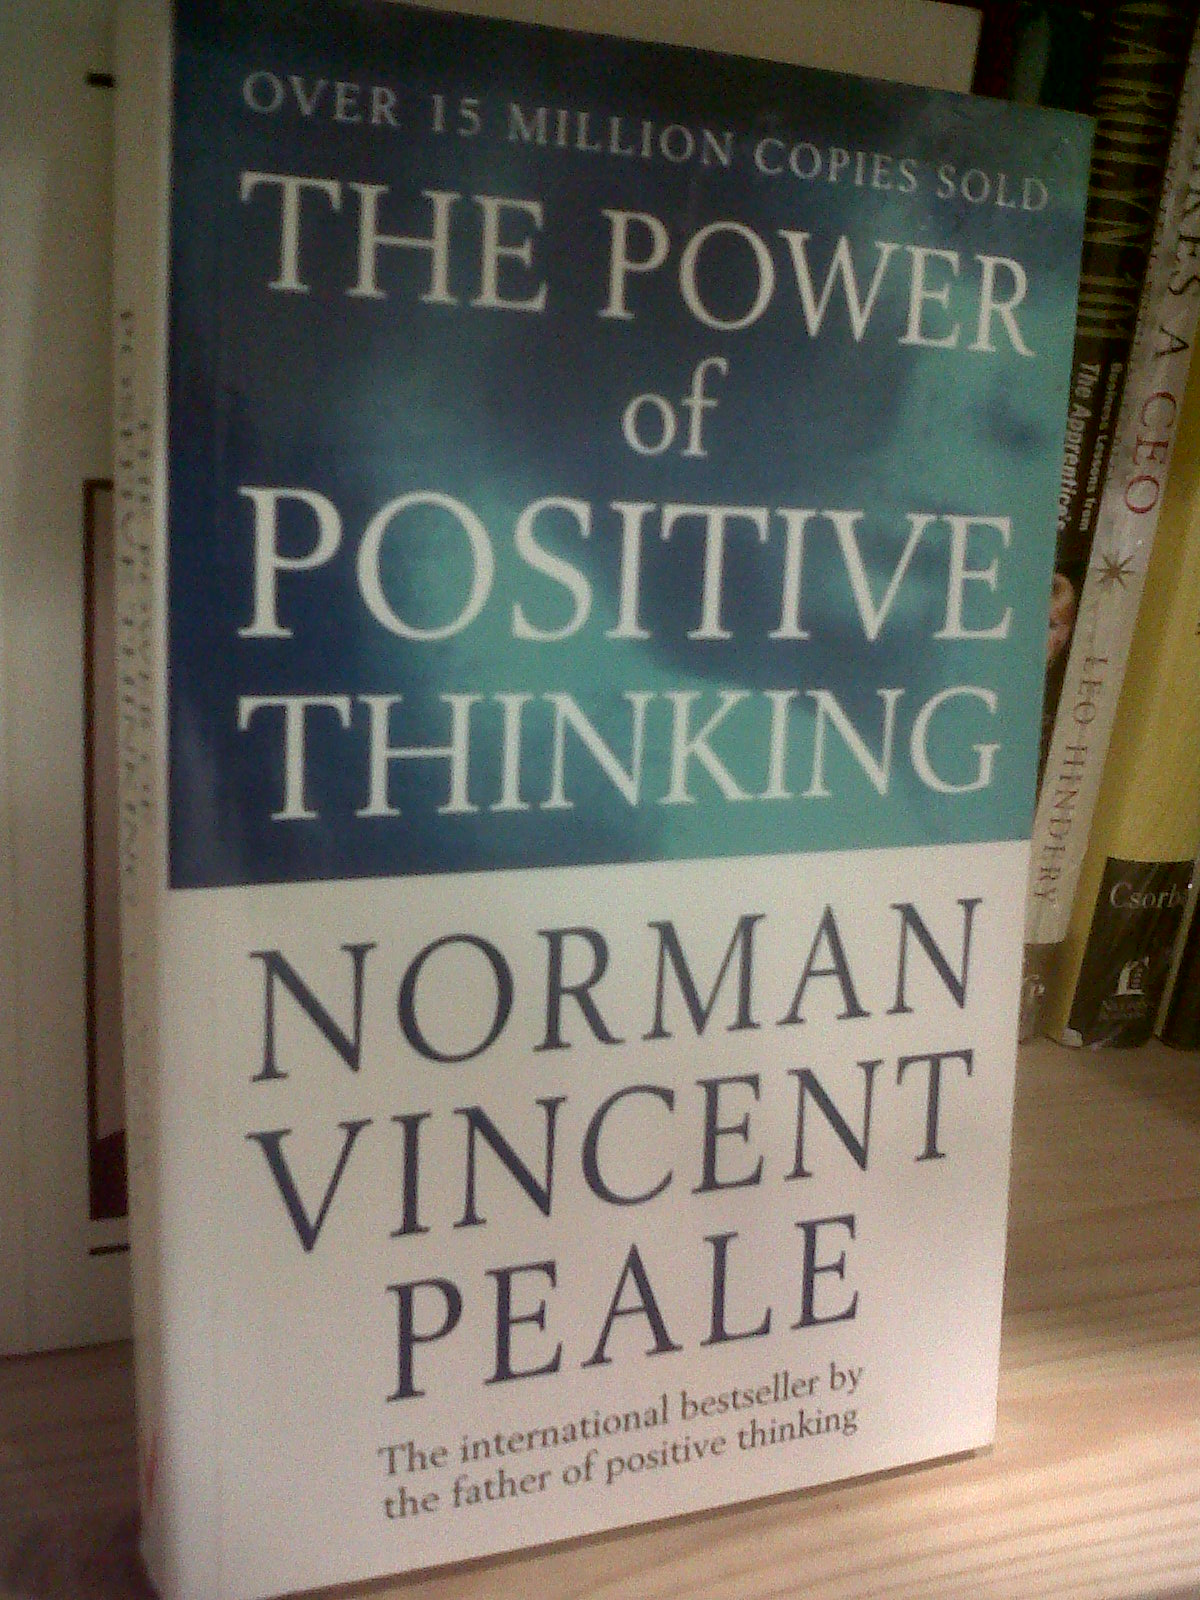 Norman Vincent Peale - The Power of Positive Thinking